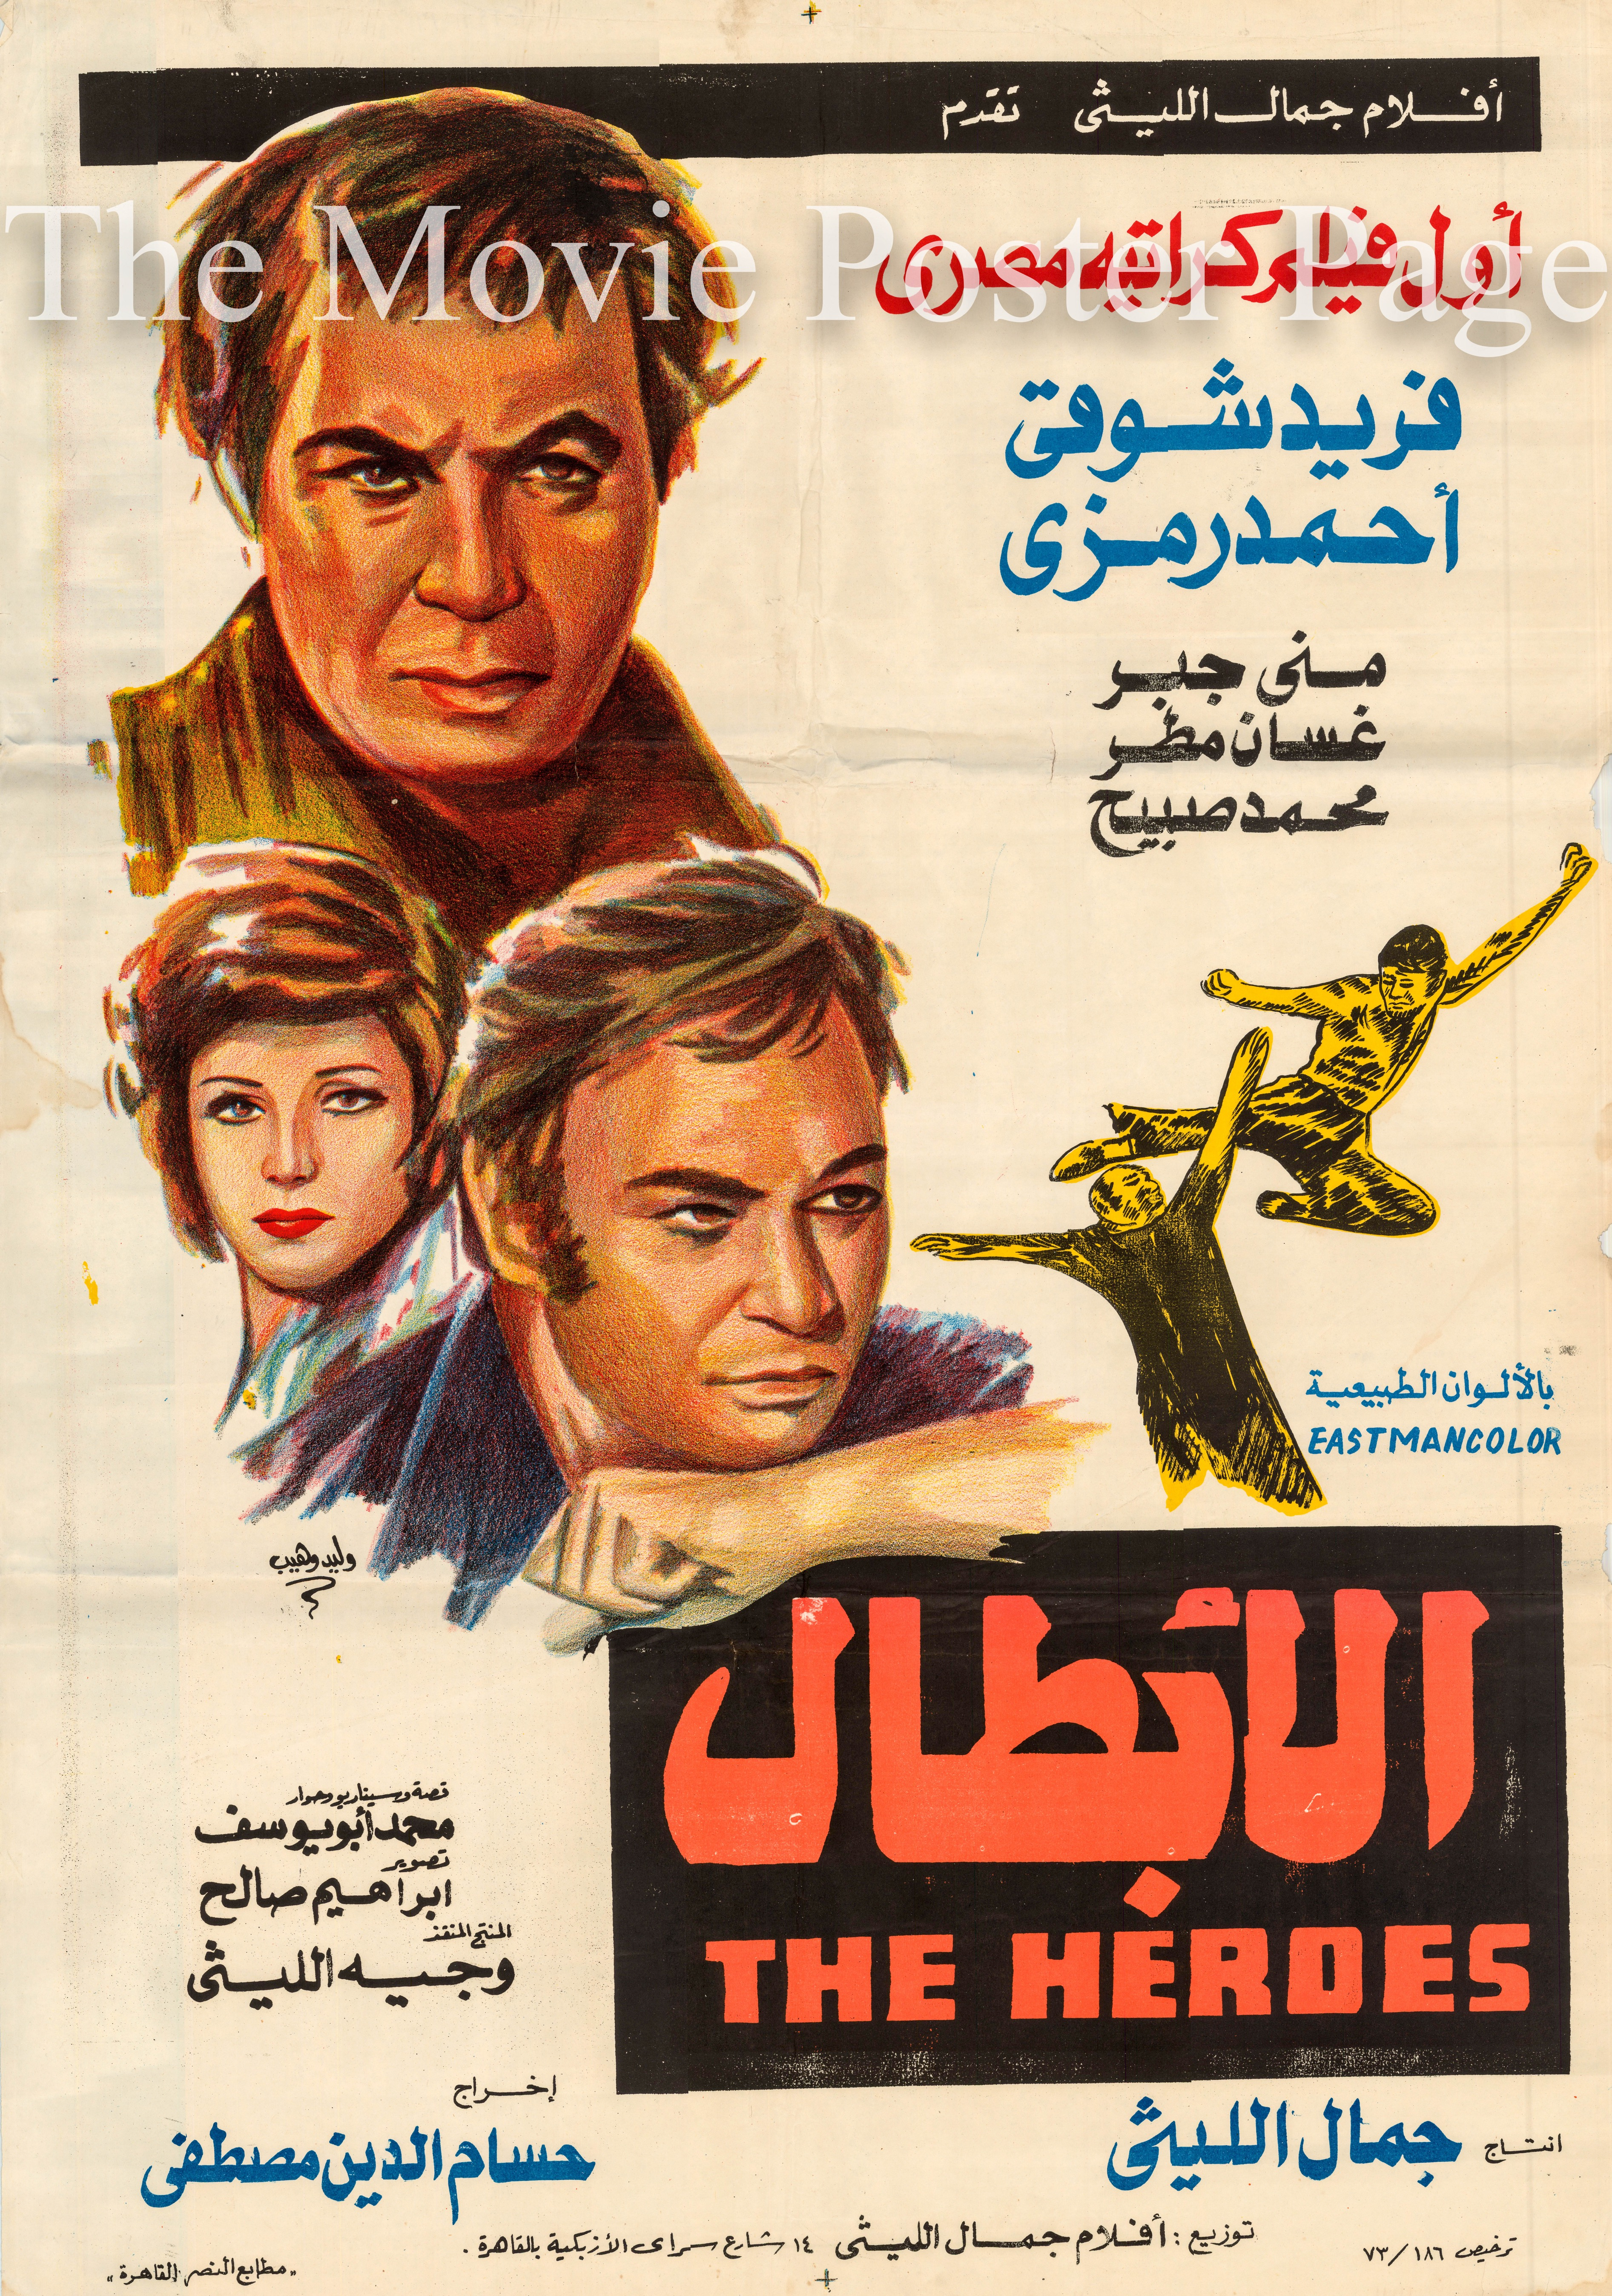 Pictured is an Egyptian promotional poster for the 1974 Houssam El-Din Mustafa film The Heroes, starring Farid Shawqi as Saber.